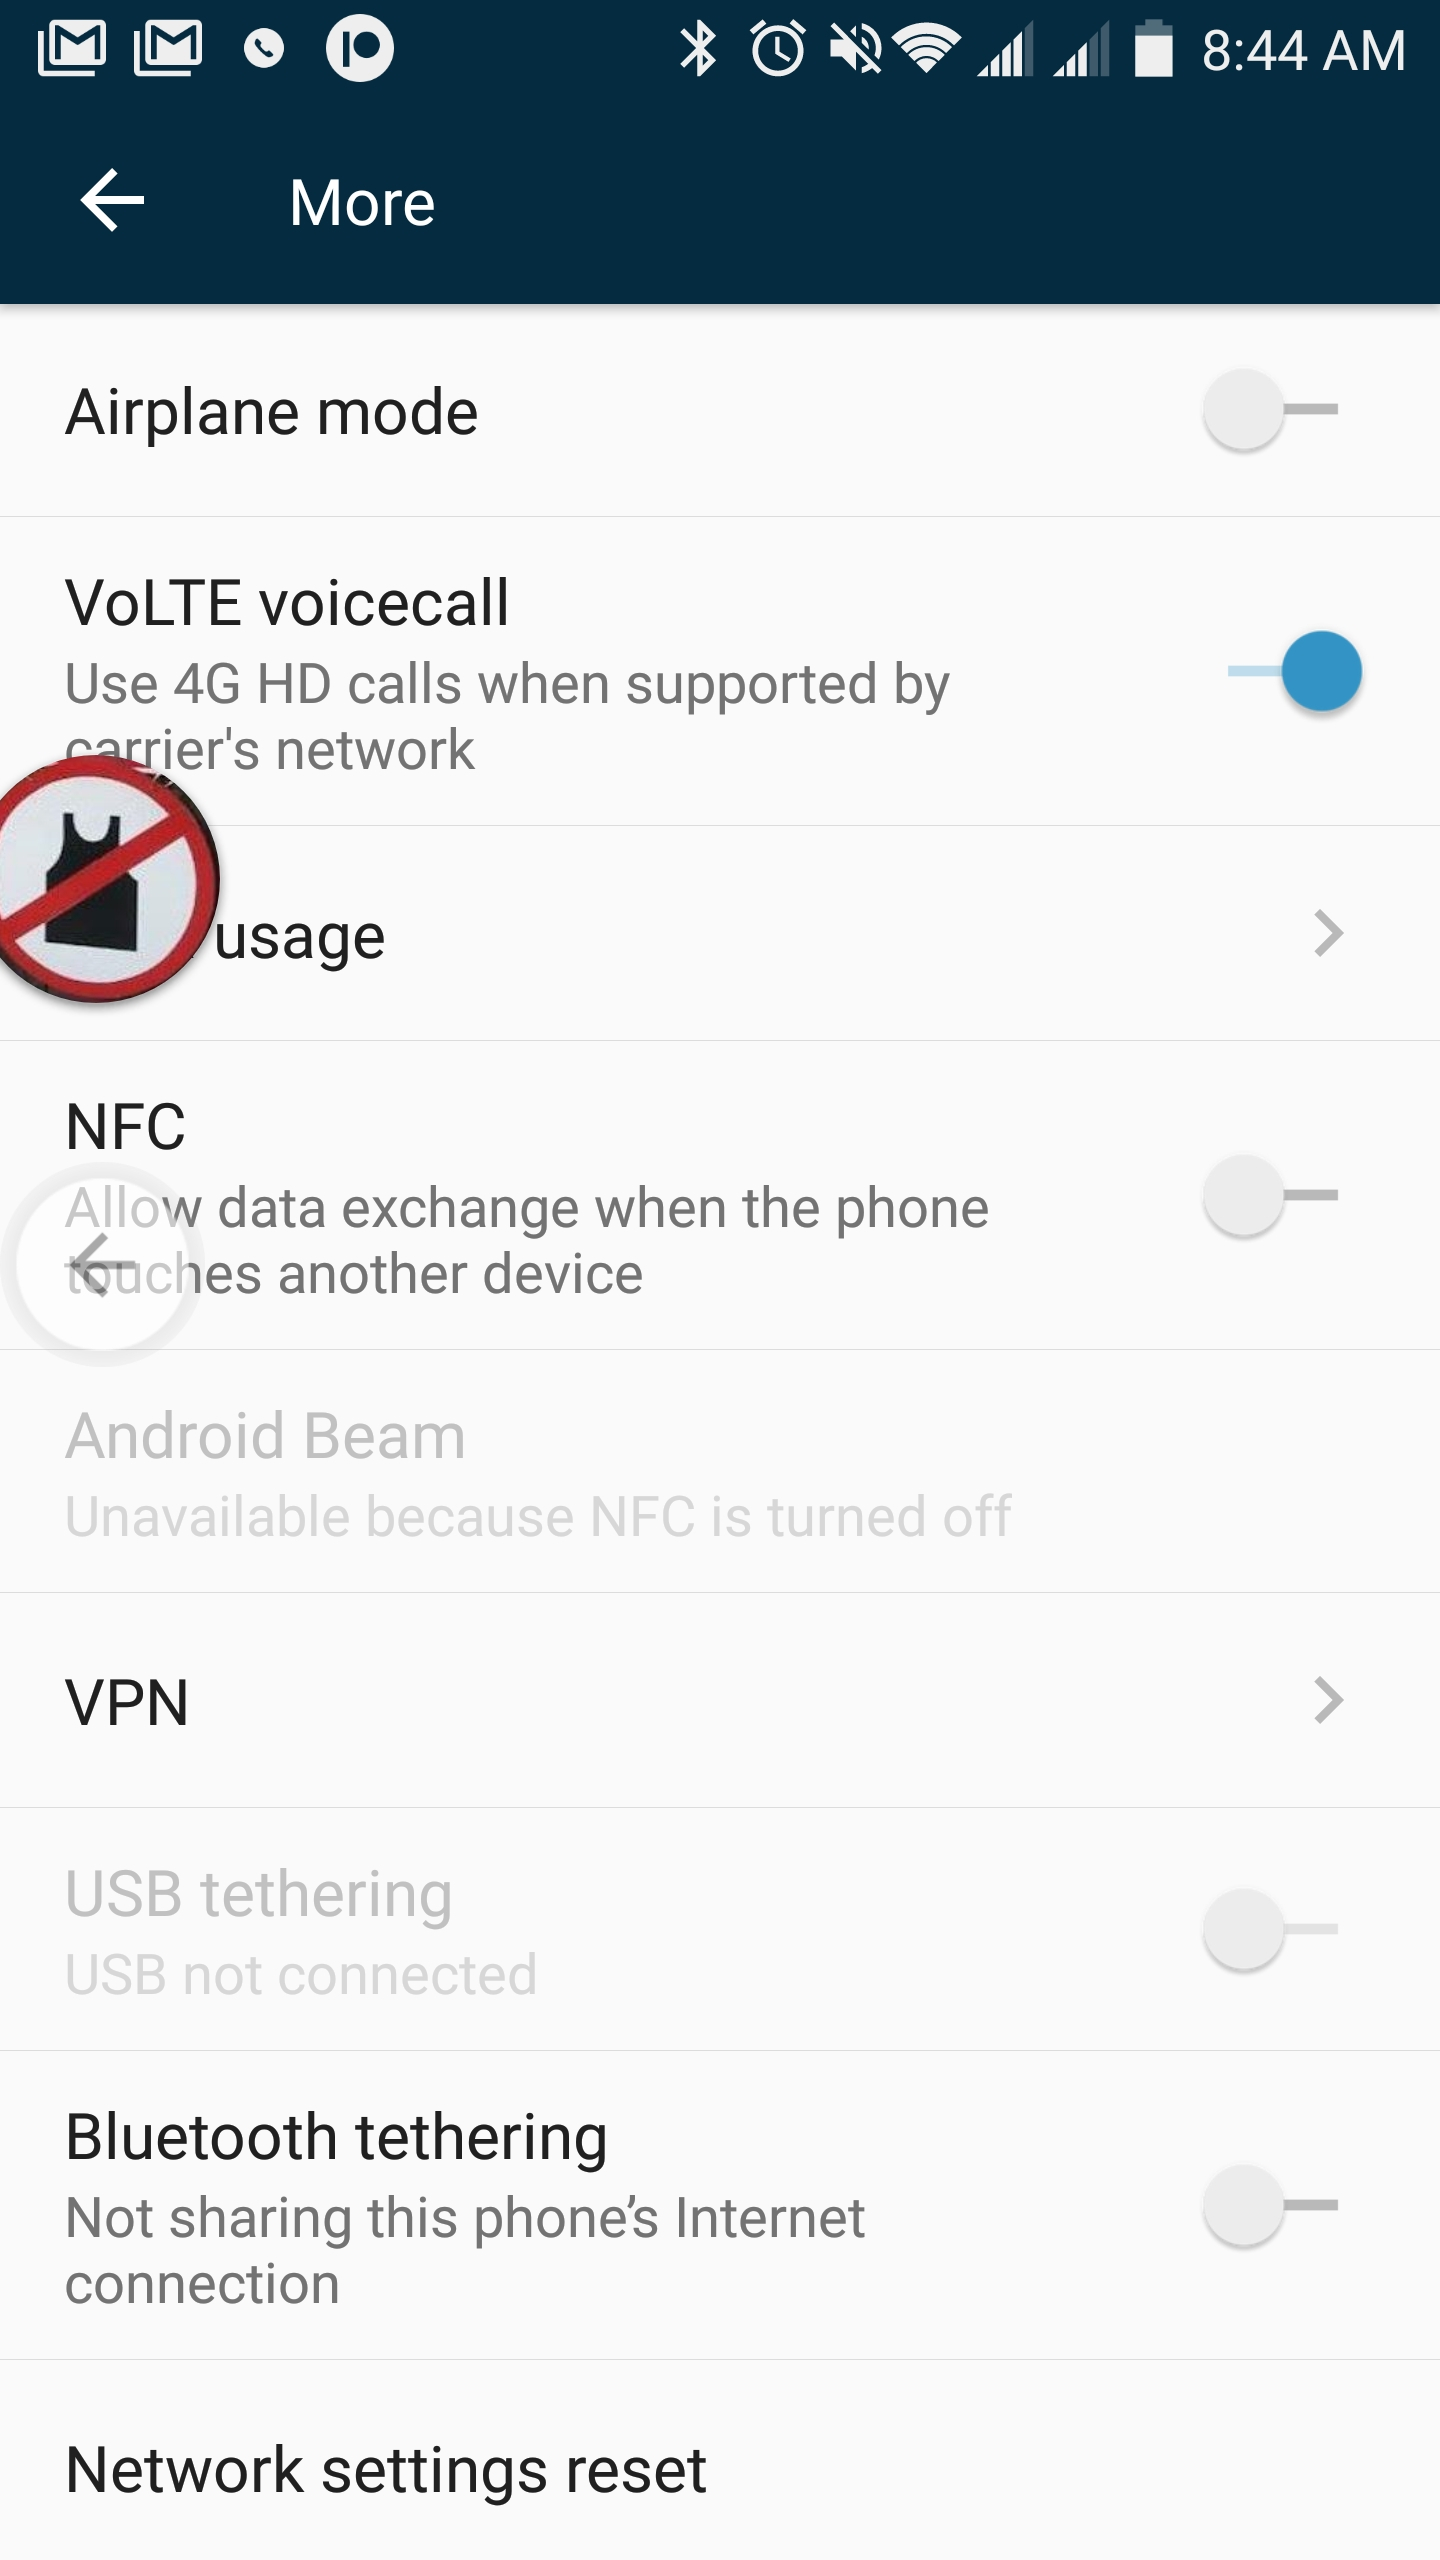 Why don't I see the wi-fi calling options on my Axon 7 — Z